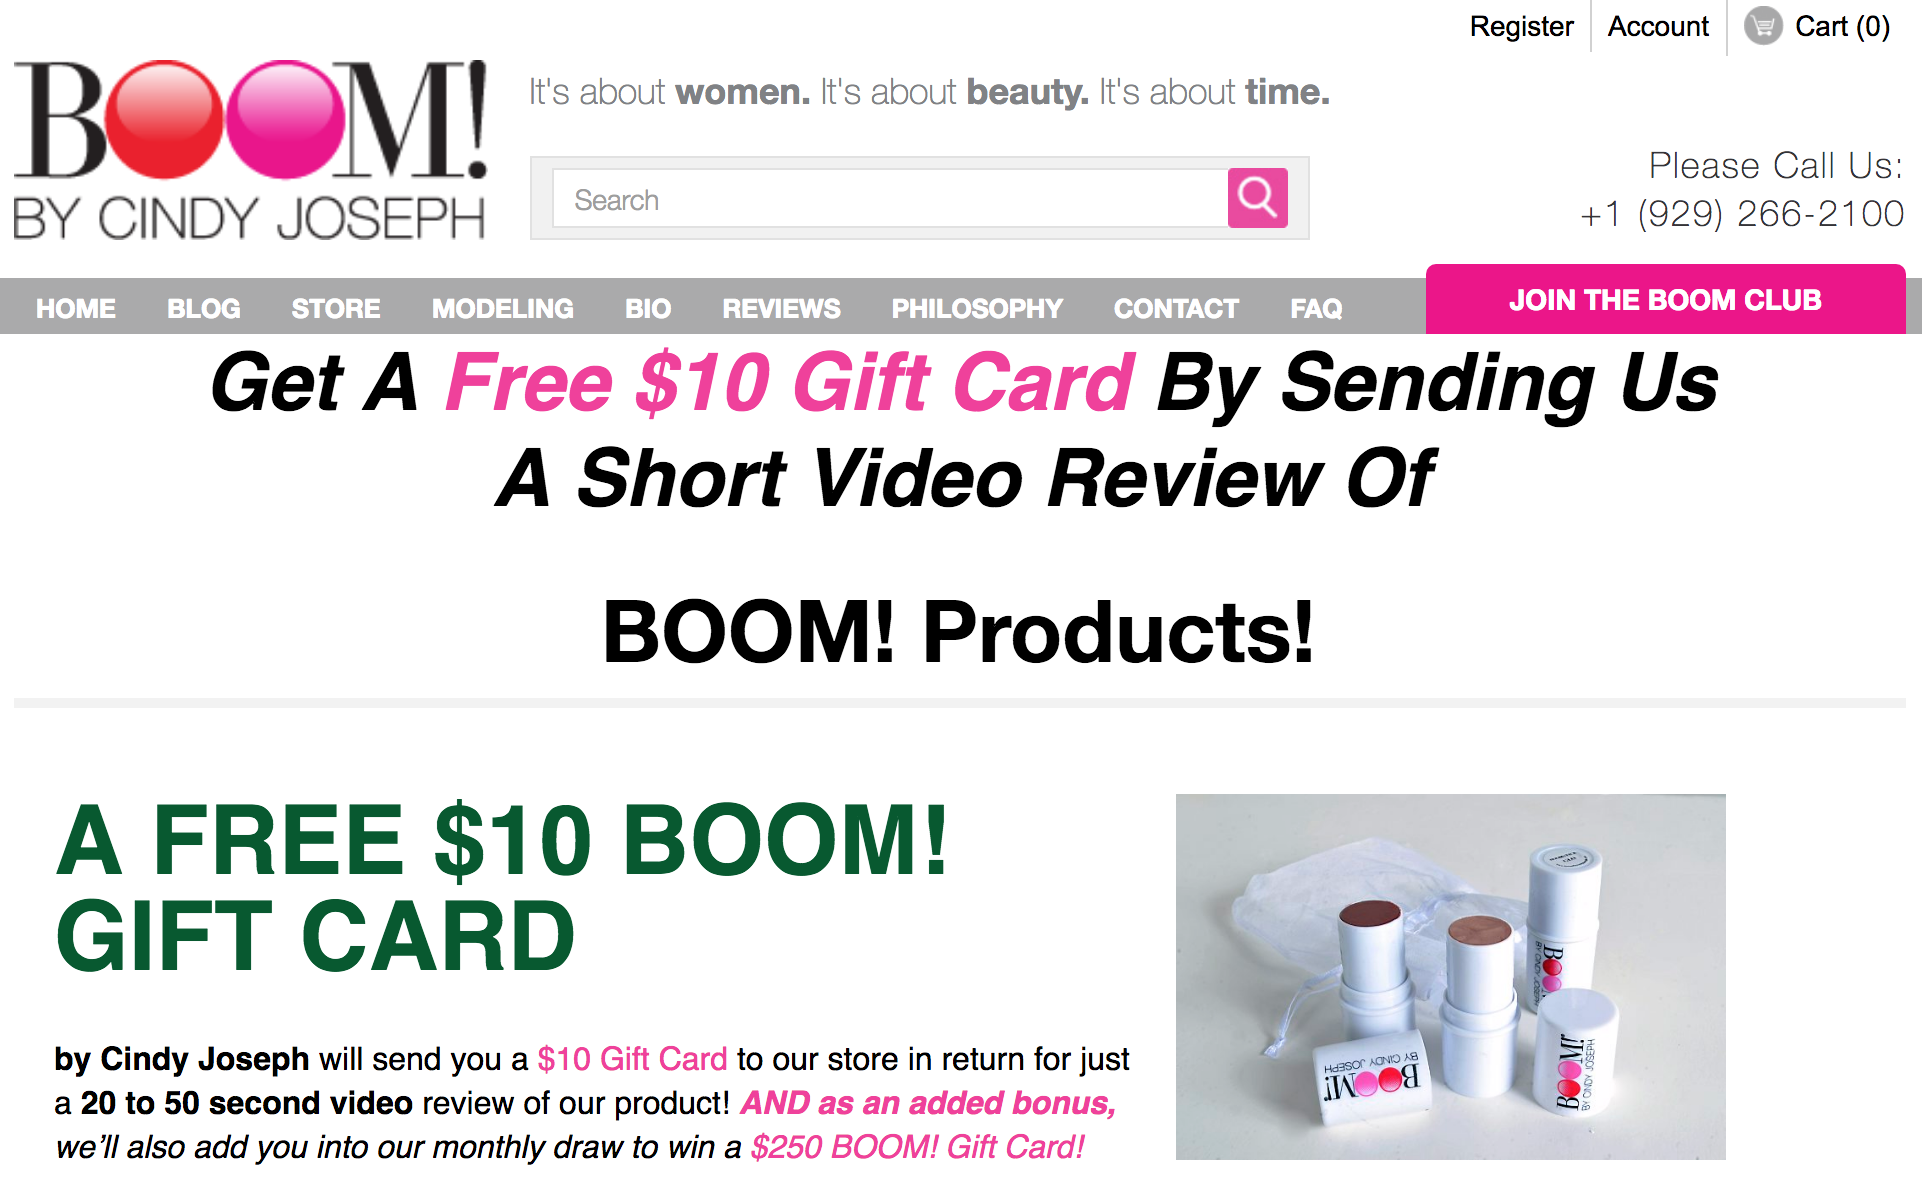 Screenshot showing a gift card offer by BOOM! by Cindy Joseph